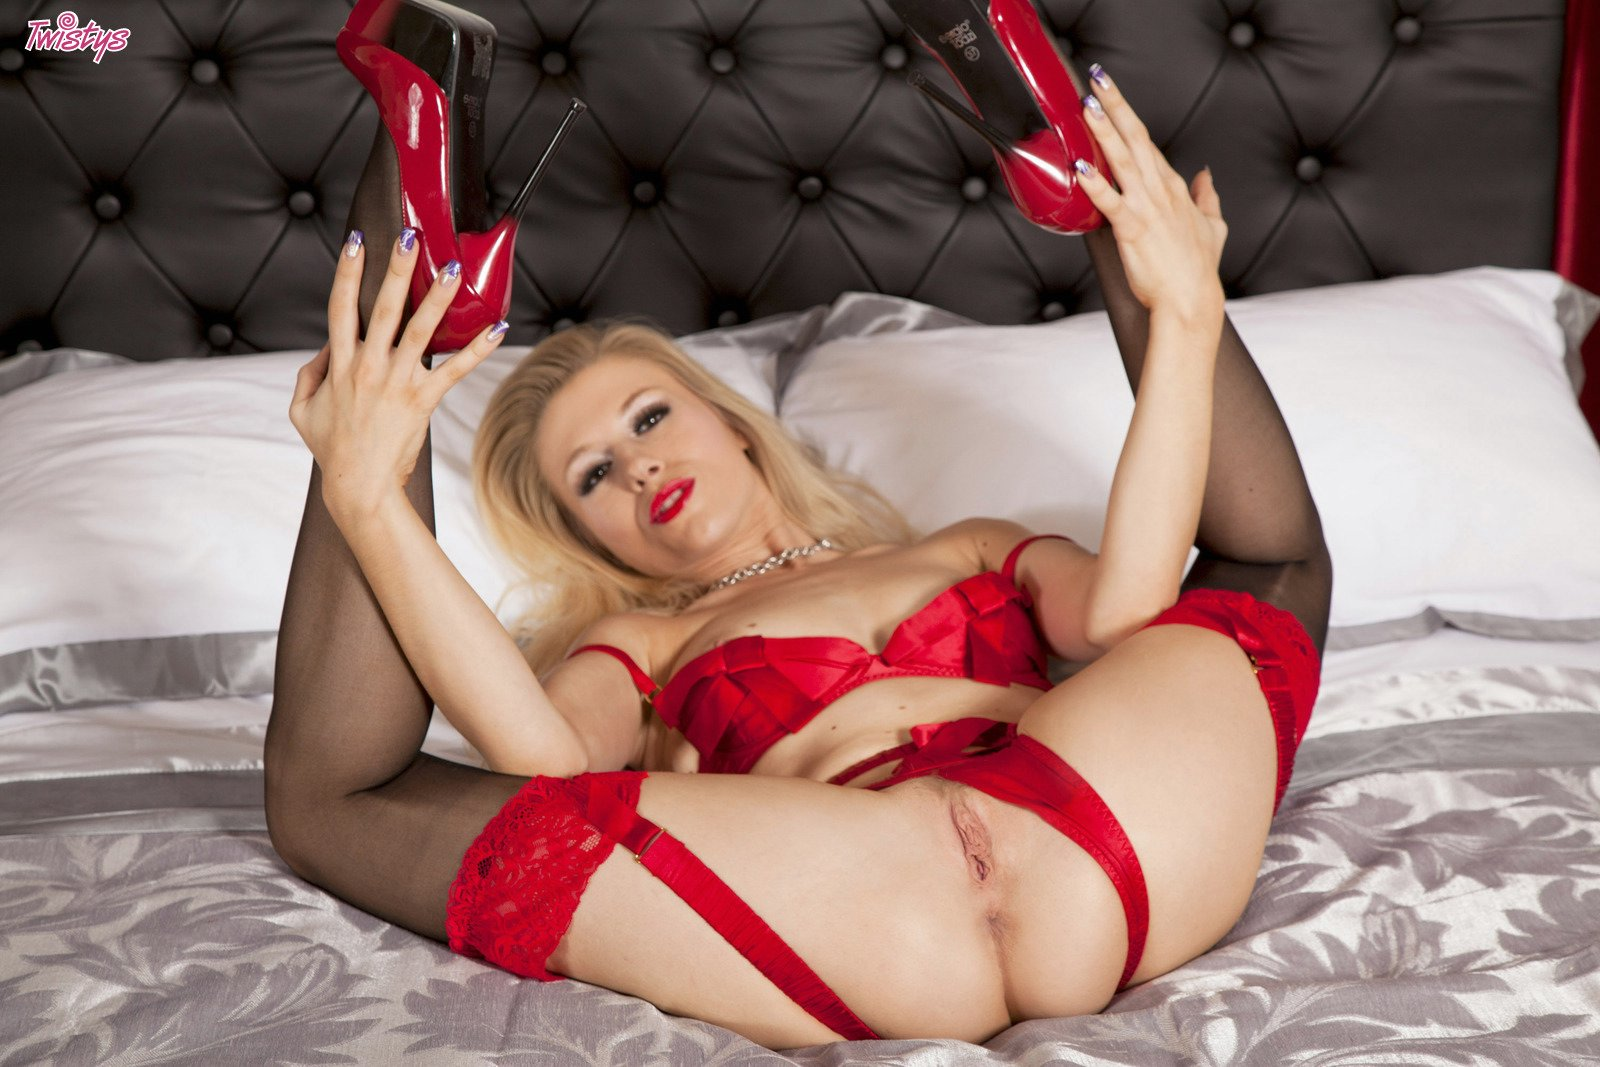 Red high heels and stockings porn images think